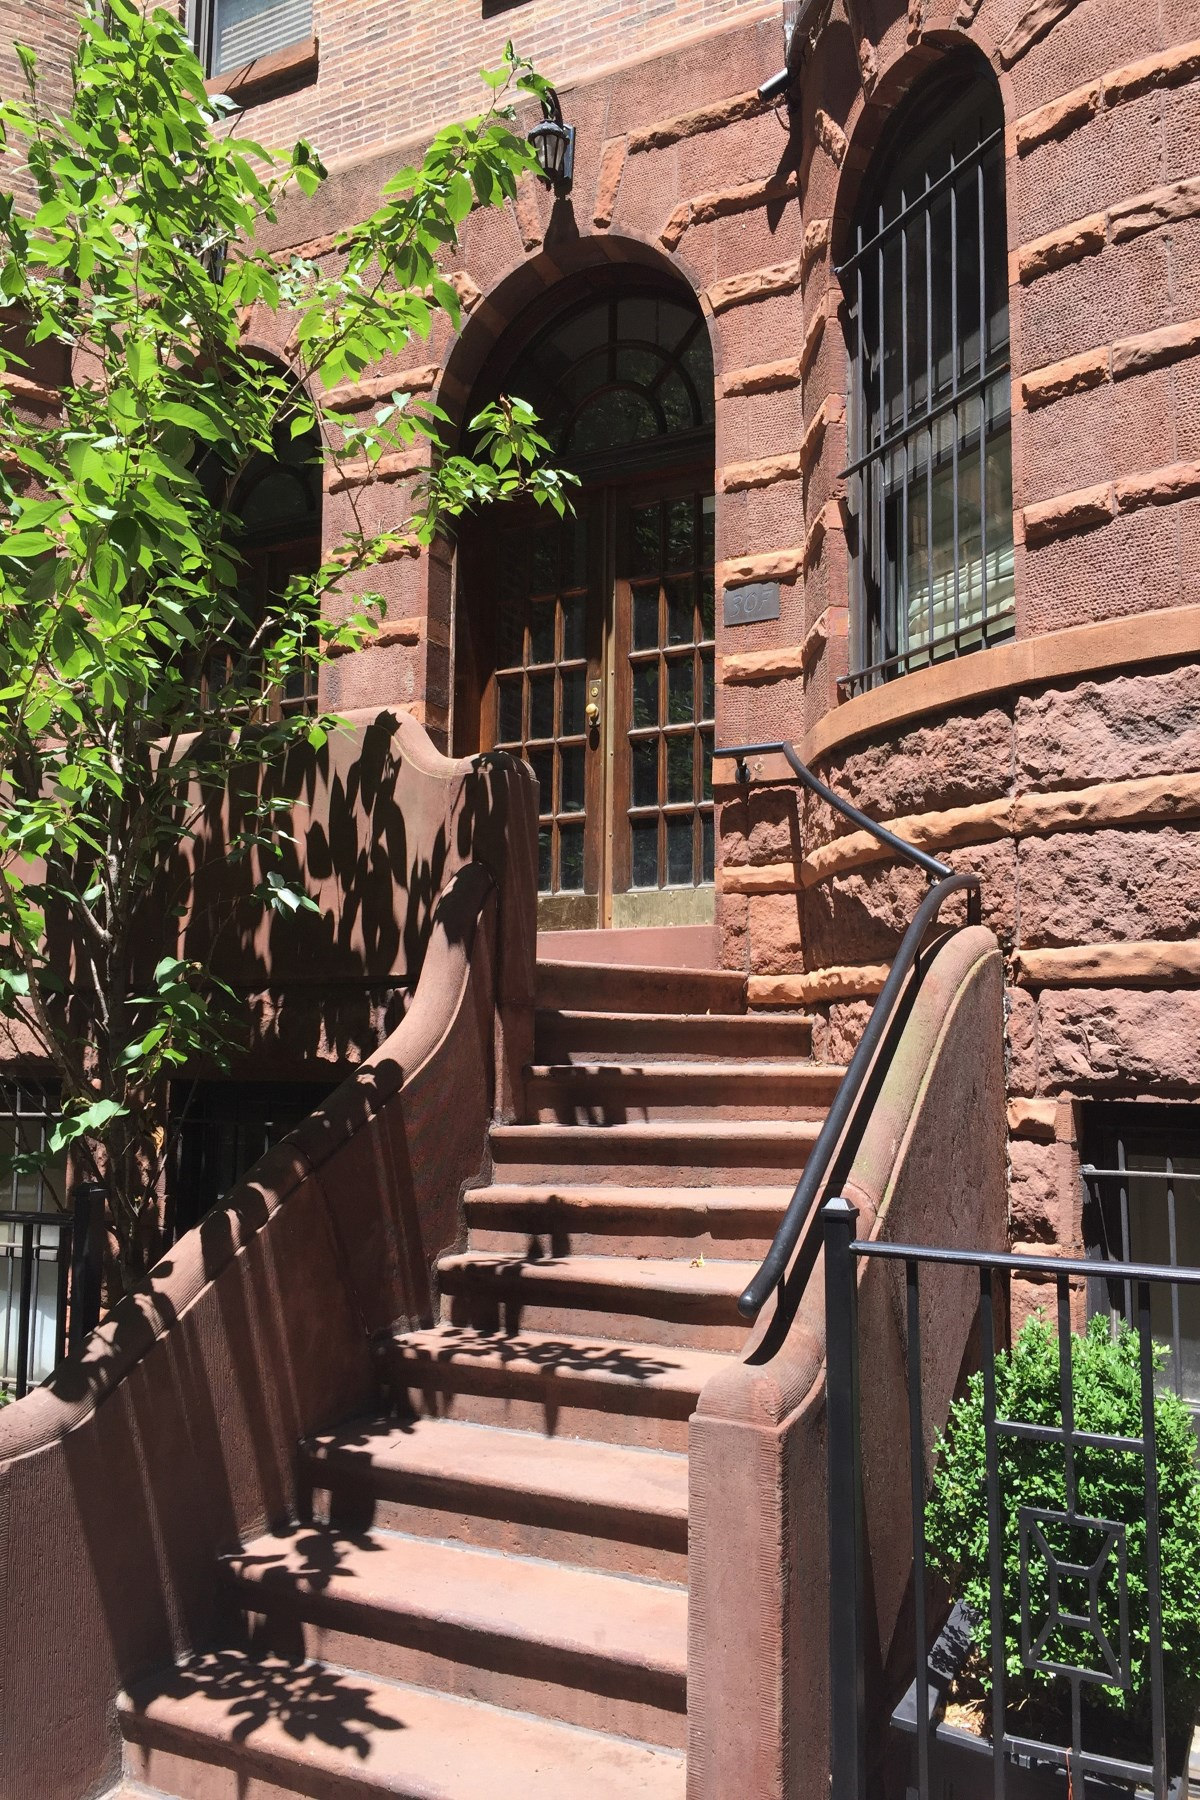 Co-op for Sale at 307 West 82nd Street, Apt. C 307 West 82nd Street Apt. C Upper West Side, New York, New York, 10024 United States